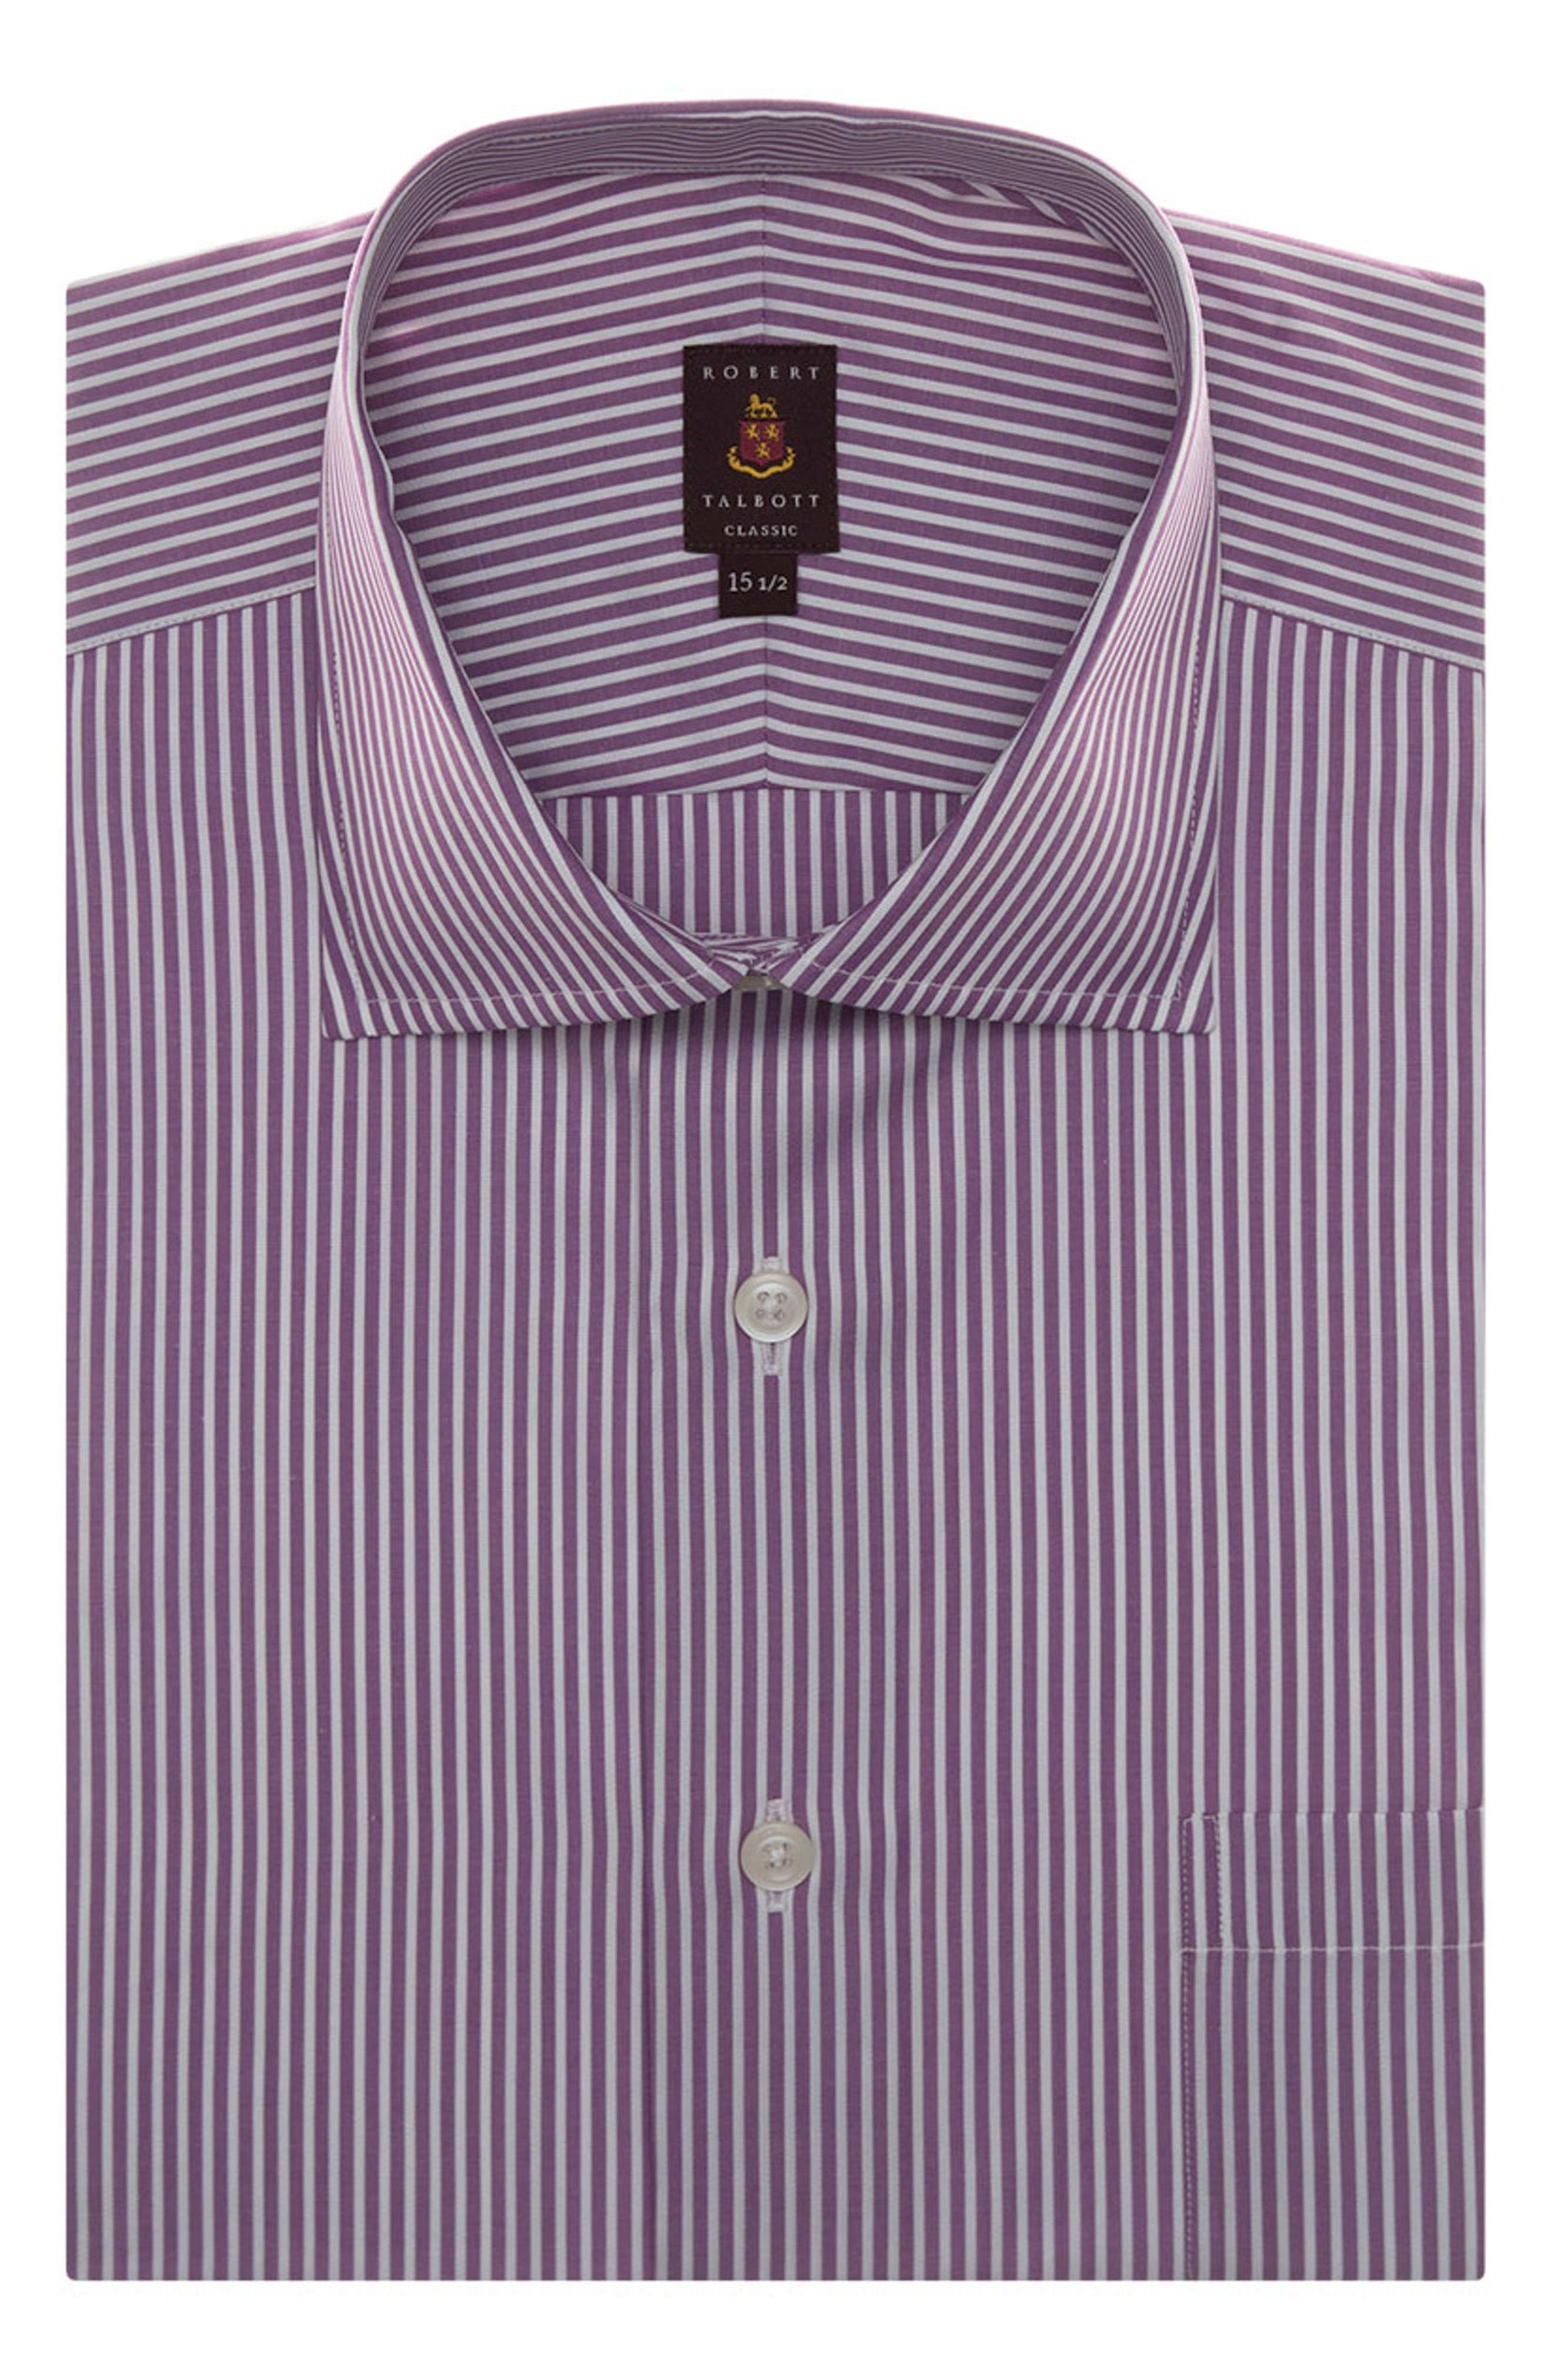 Tailored Fit Stripe Dress Shirt,                             Main thumbnail 1, color,                             Plum